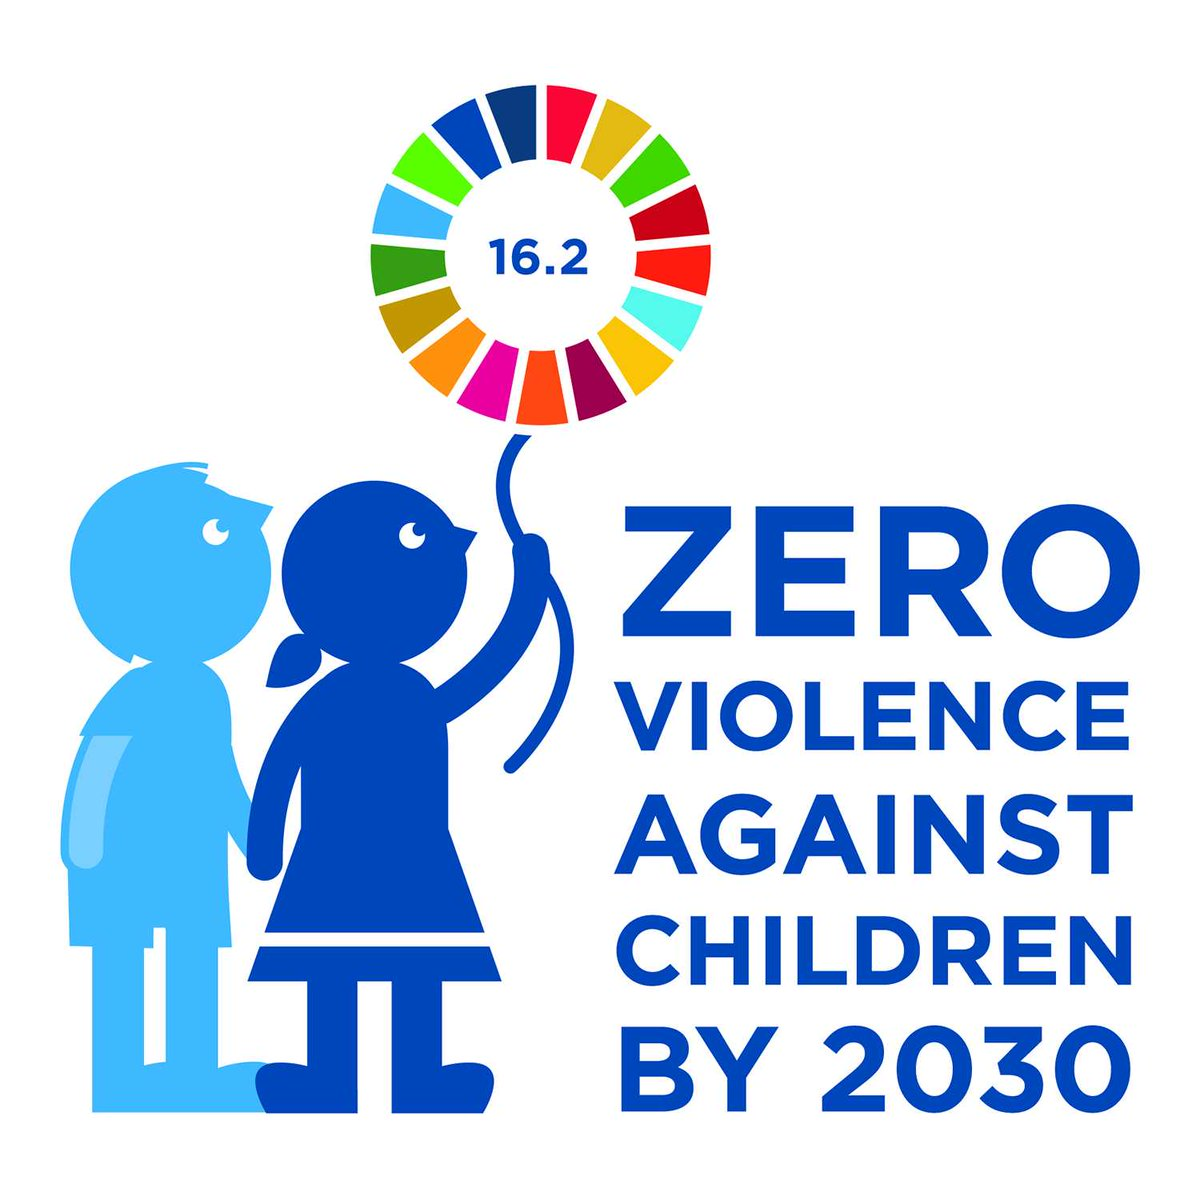 SUPPORTING THE SDG 16.2.: